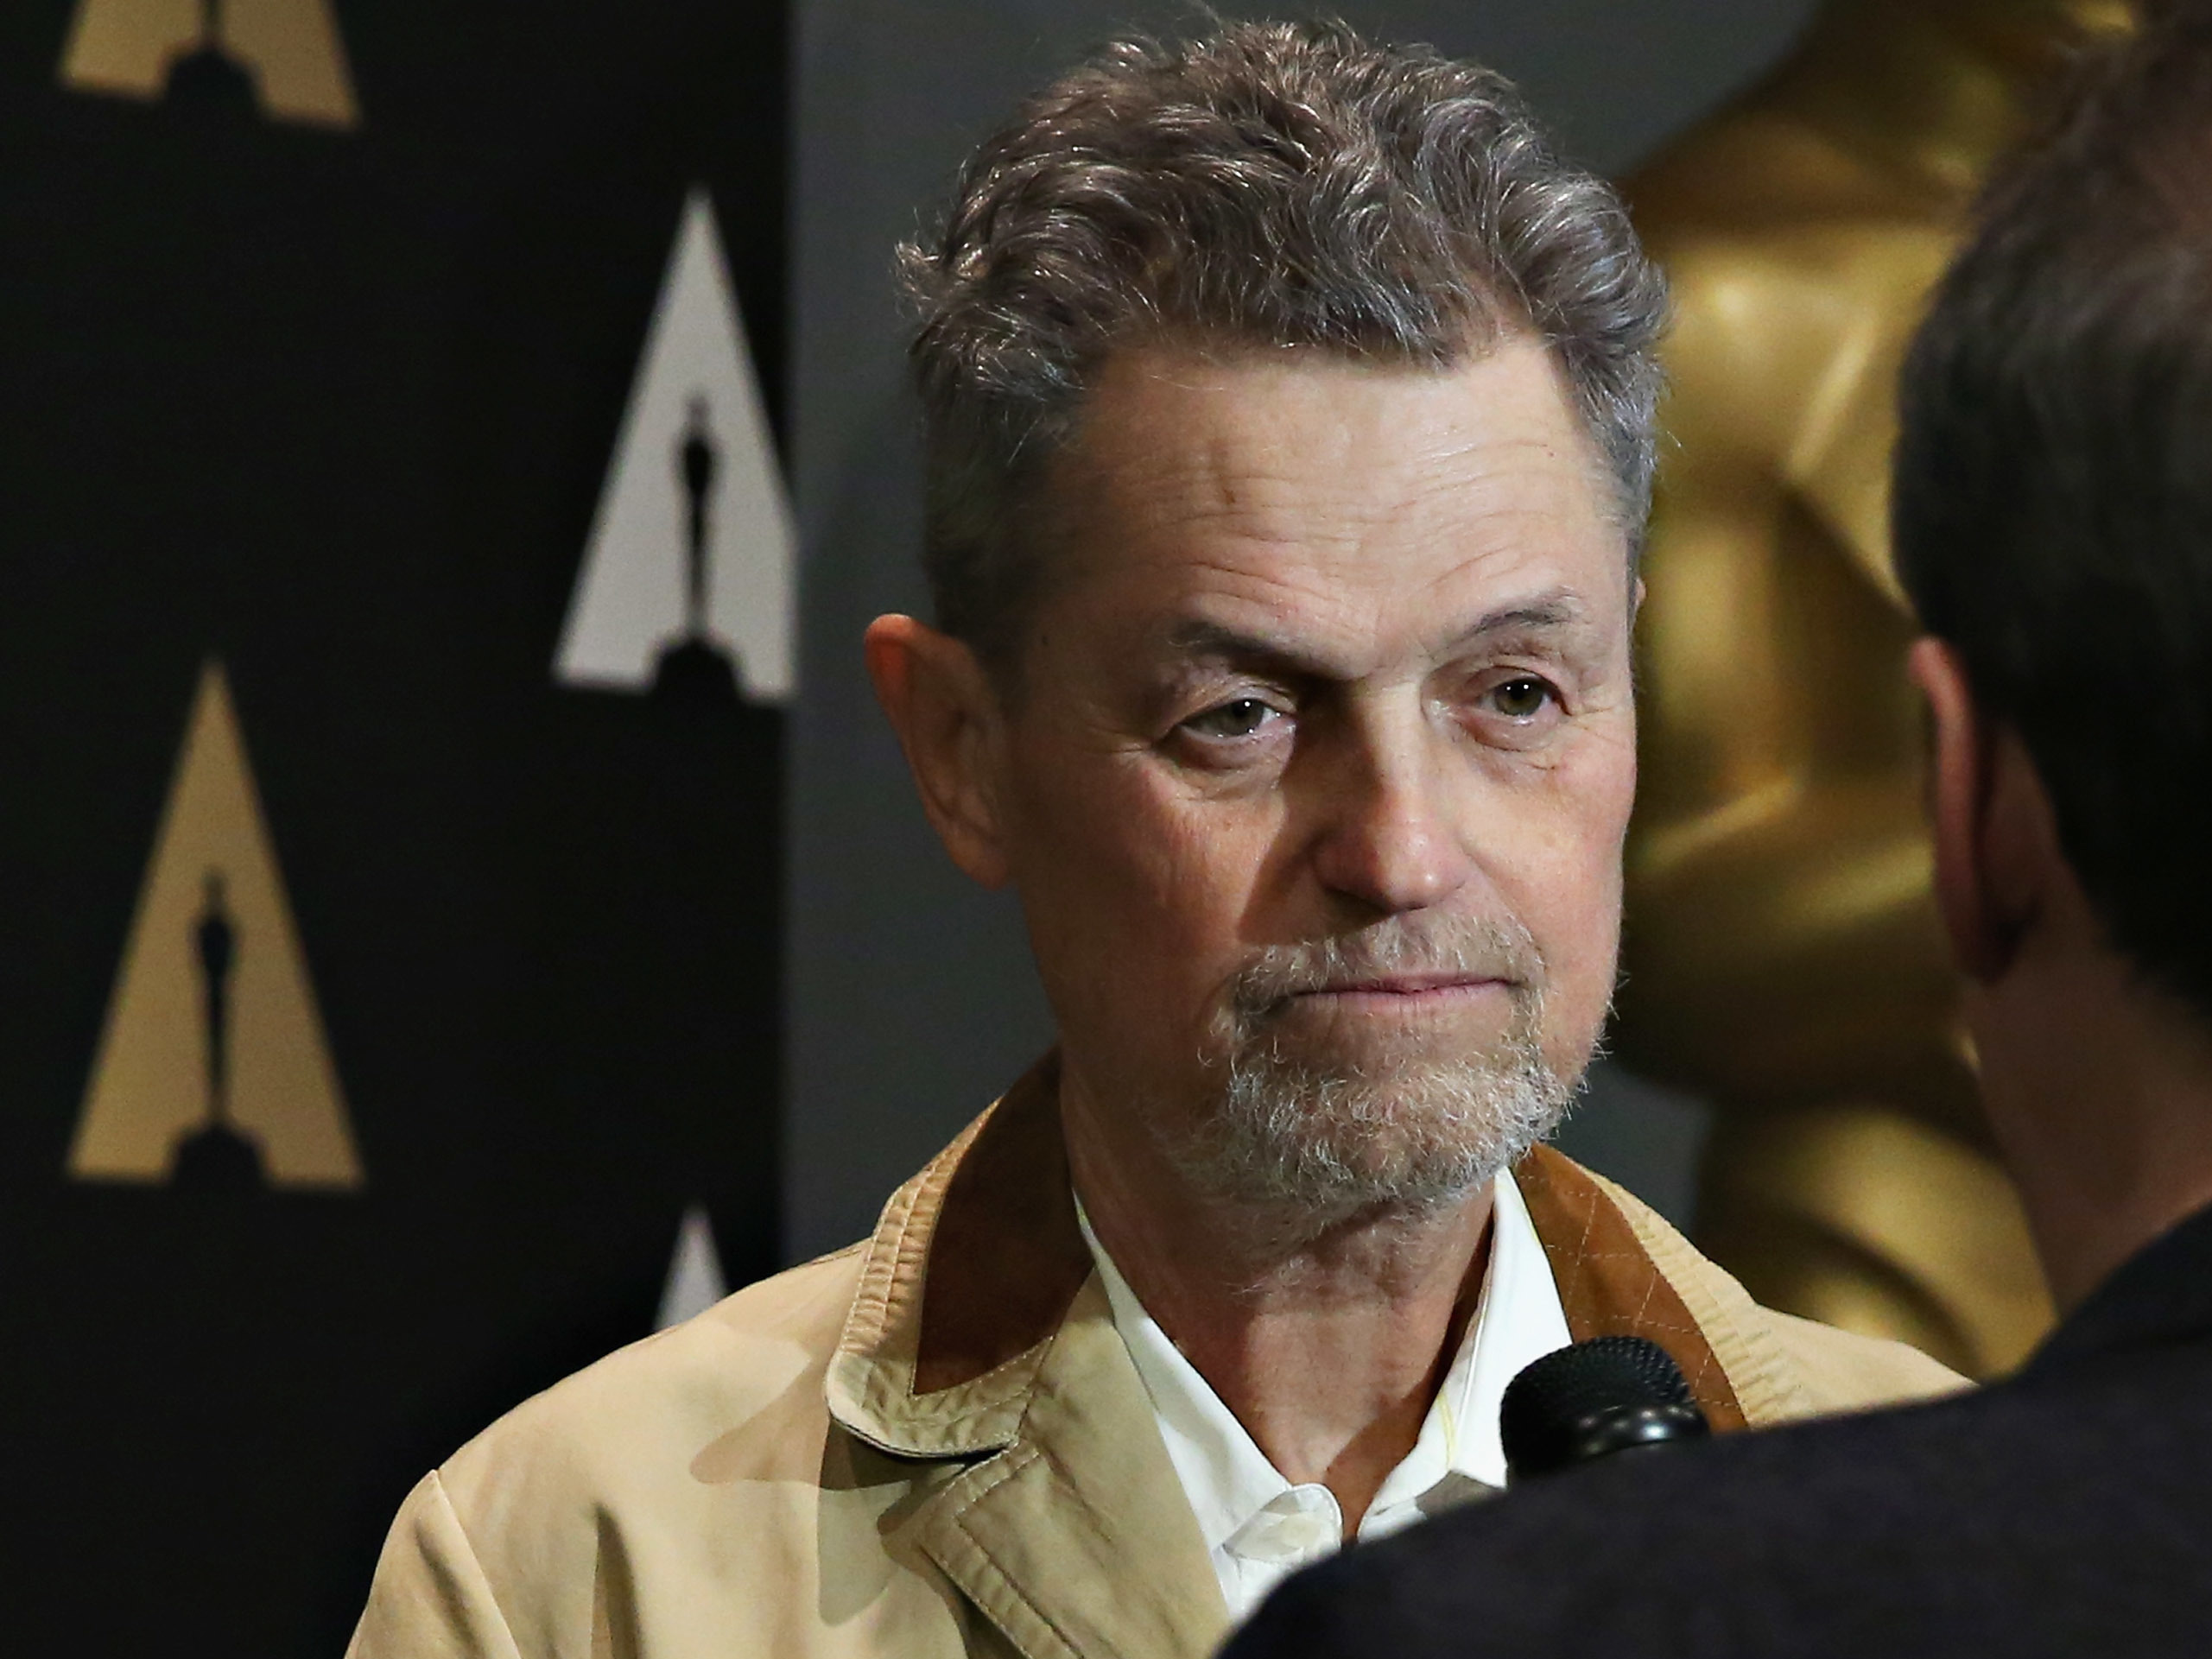 Jonathan Demme, 'Silence of the Lambs' director, dead at 73